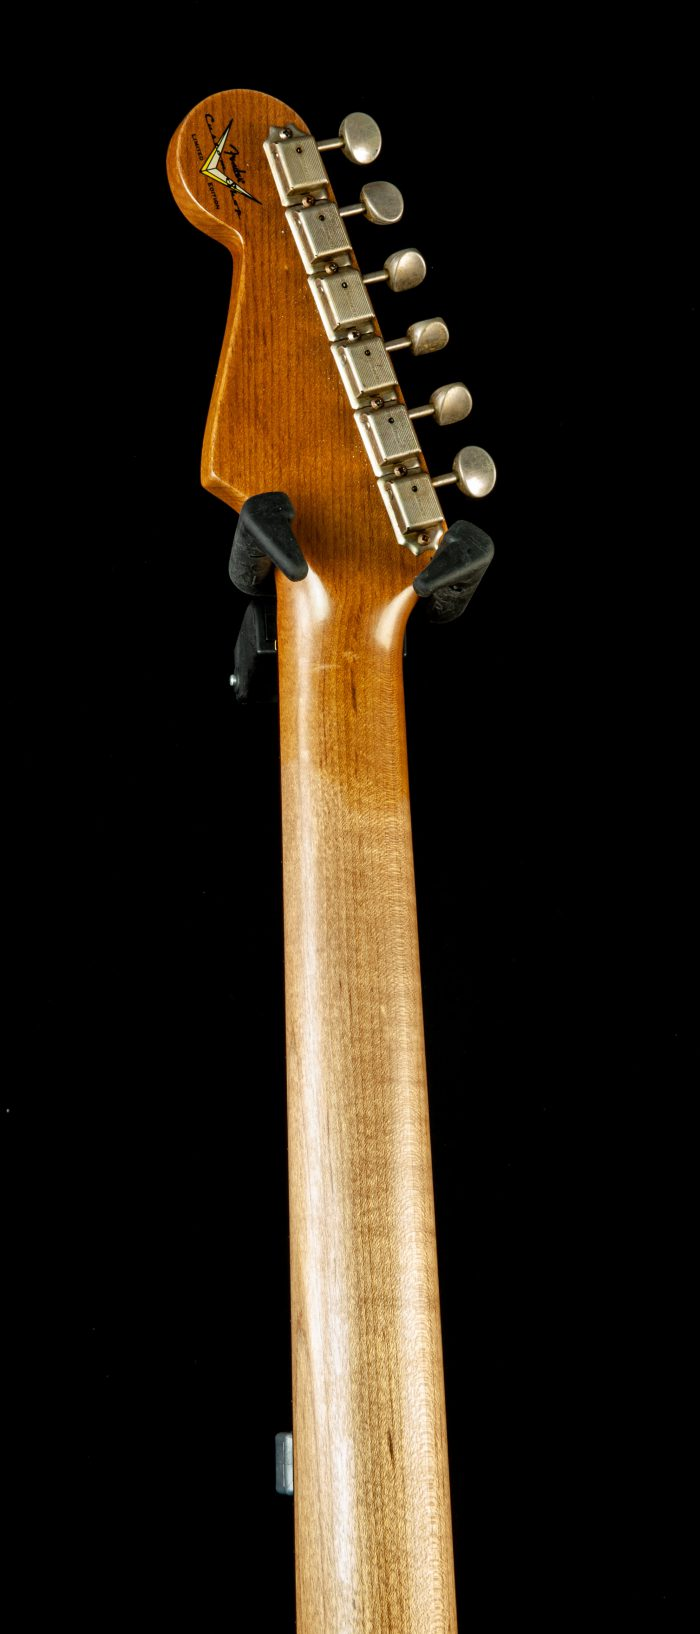 Fender Custom Shop Roasted Poblano Stratocaster Relic Rosewood Fingerboard Limited Edition in Wide Fade 2-Color Sunburst